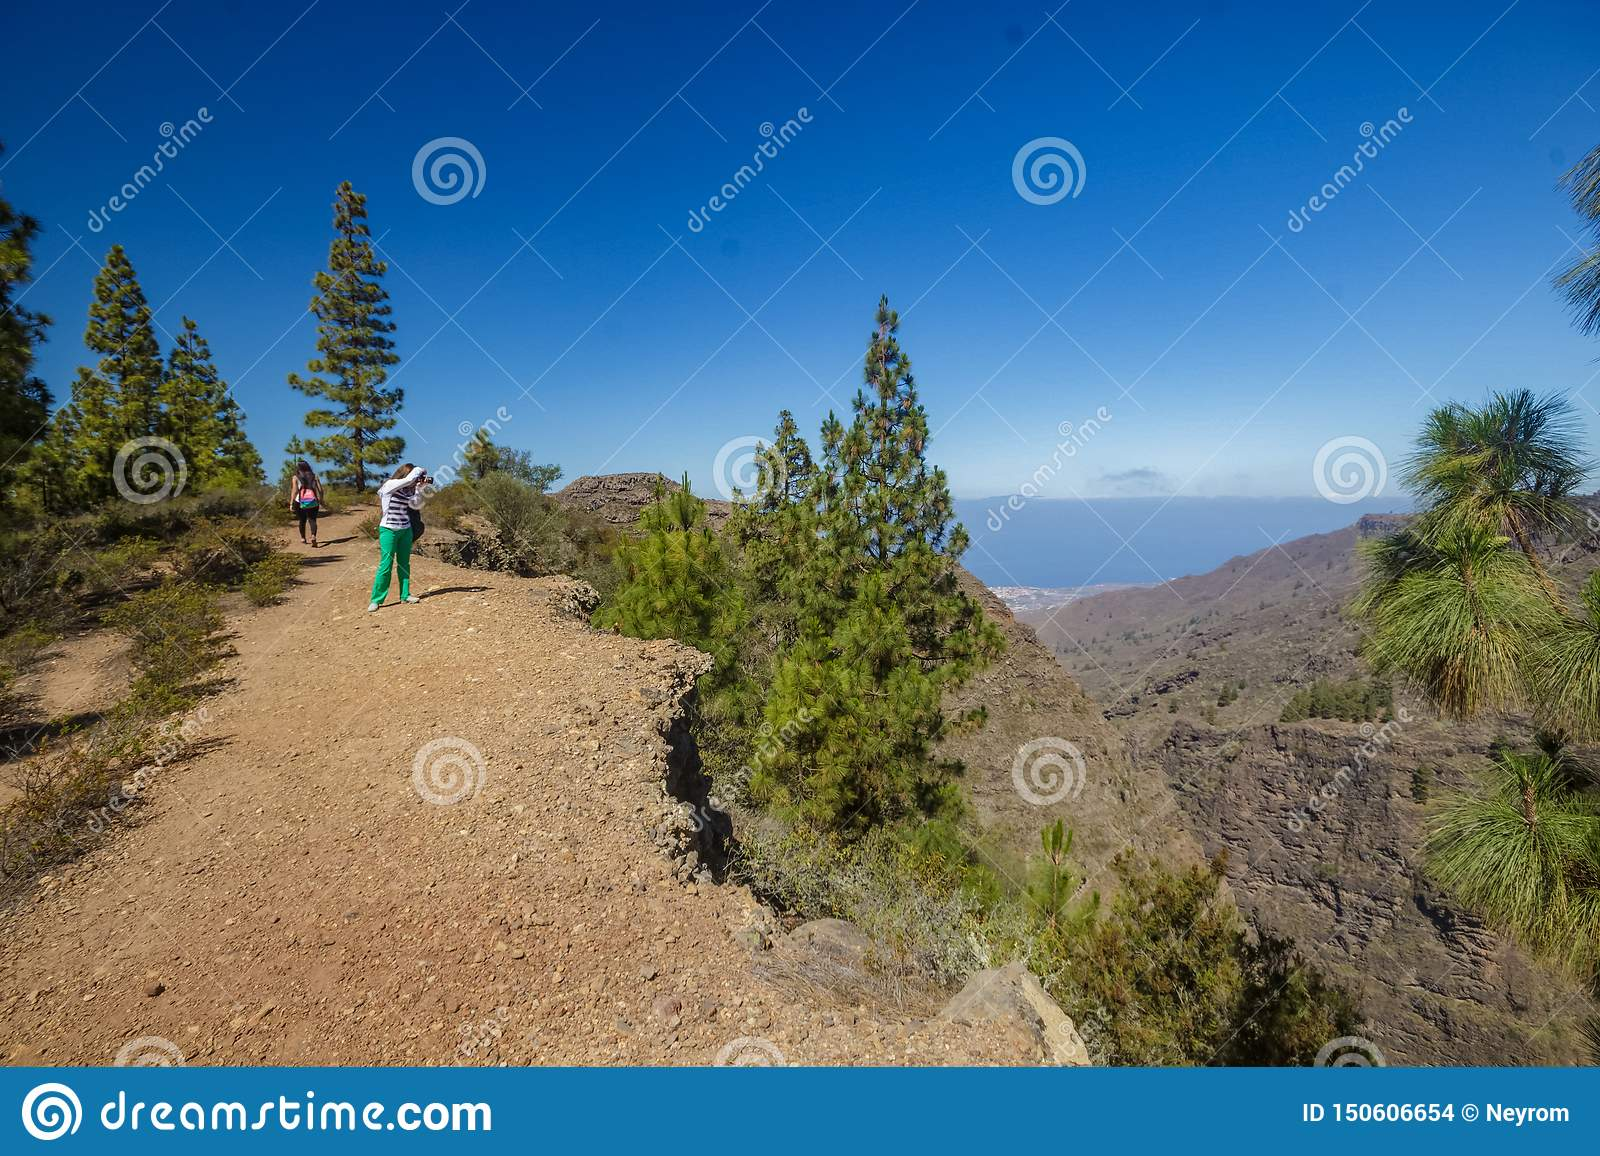 Stony path at upland surrounded by pine trees at sunny day. Clear lue sky and some clouds along the horizon line. Rocky tracking